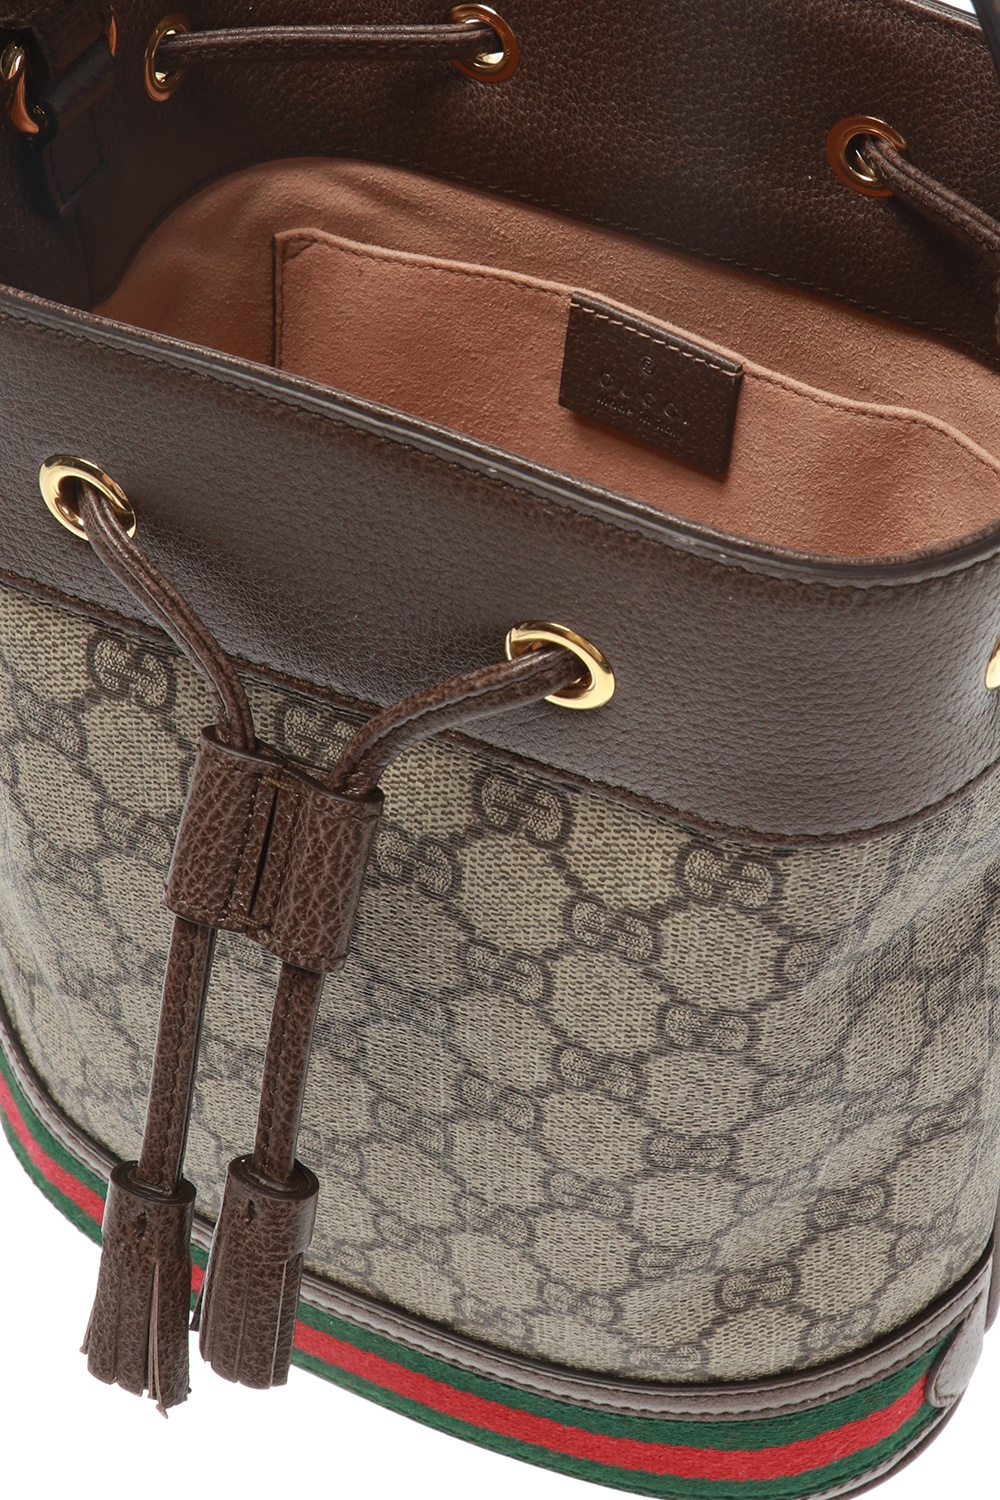 Gucci 'Ophidia' shoulder bag